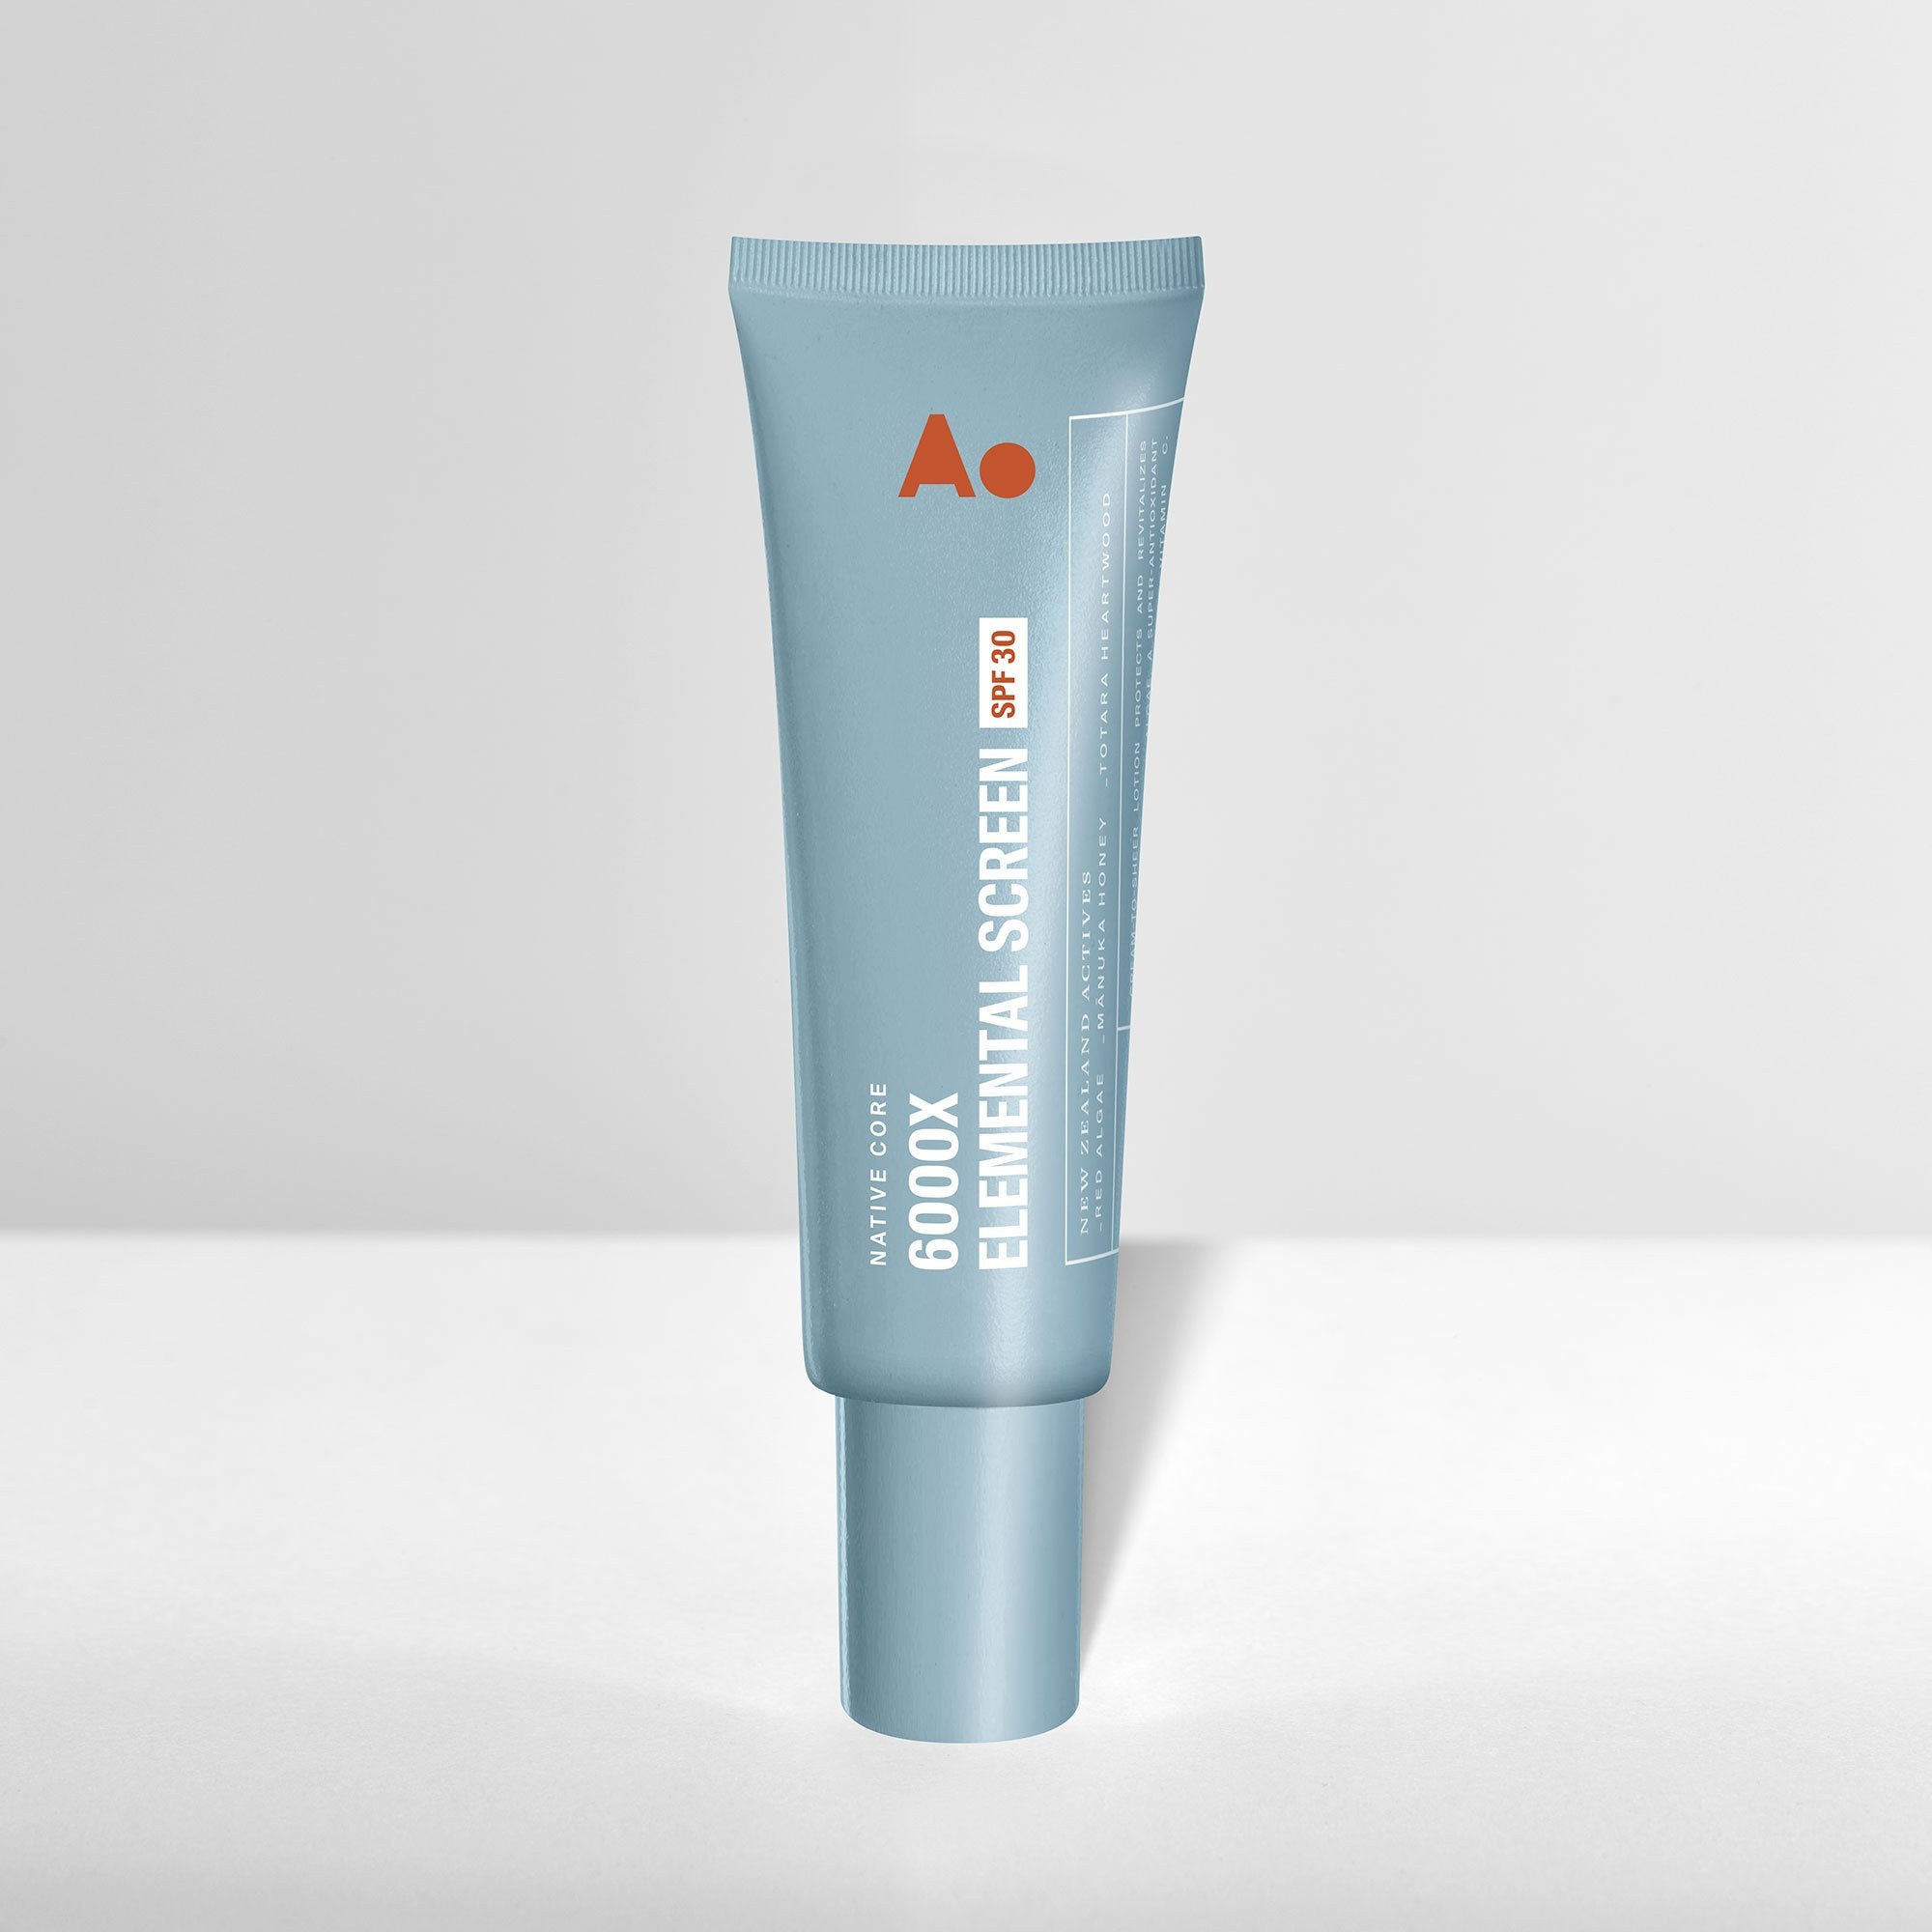 6000x ELEMENTAL SCREEN SPF 30 - Ao Skincare